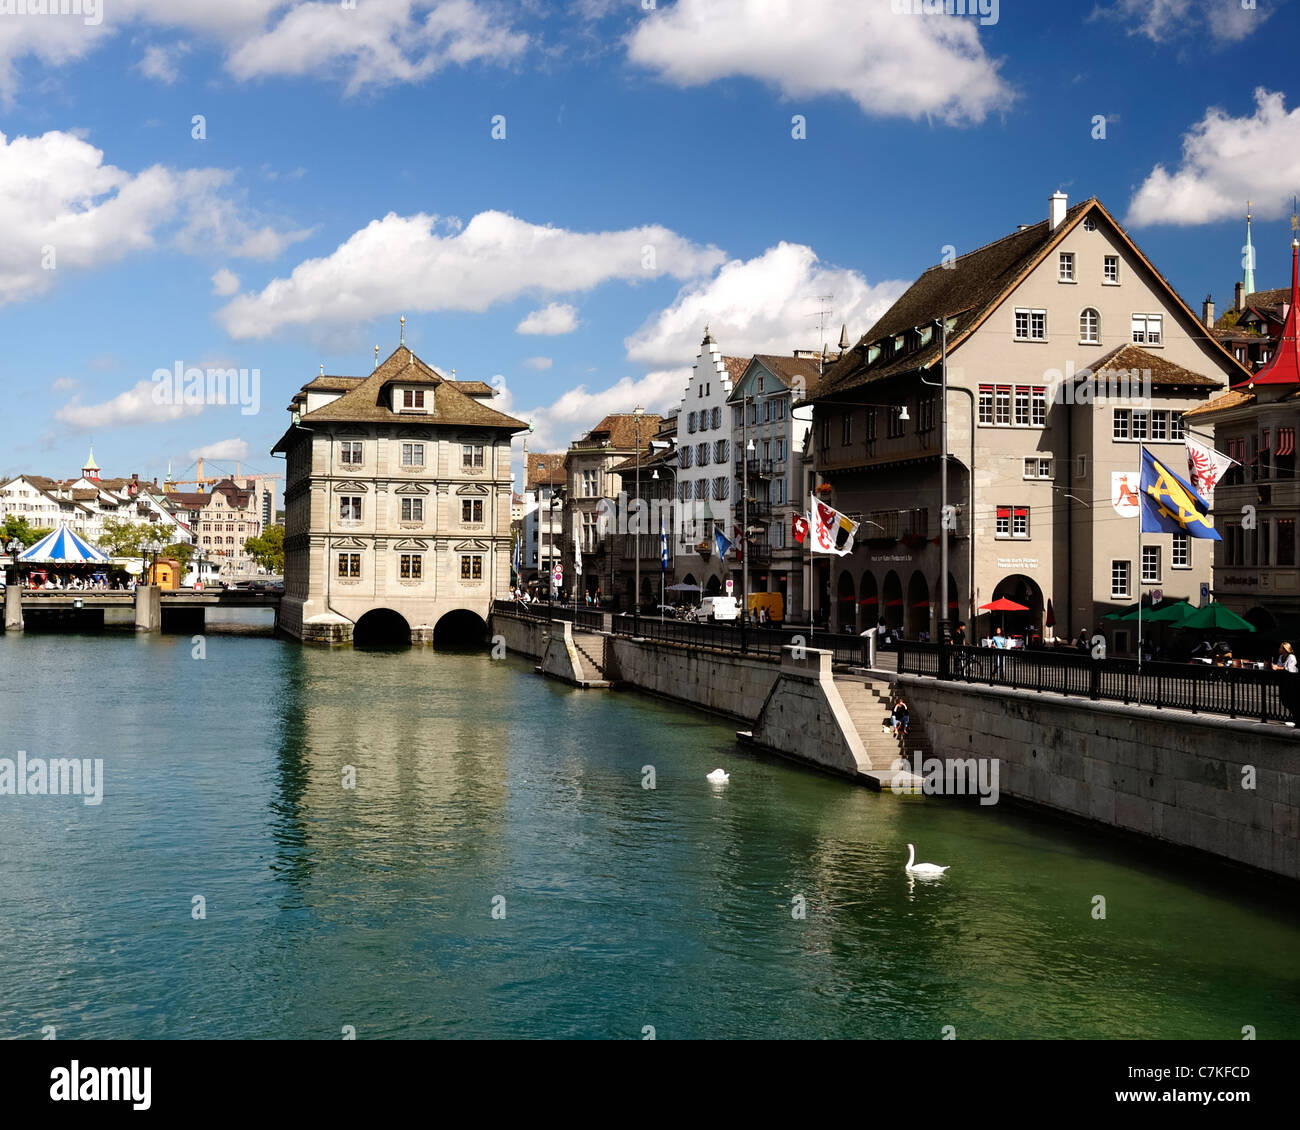 Zurich Switzerland - Stock Image